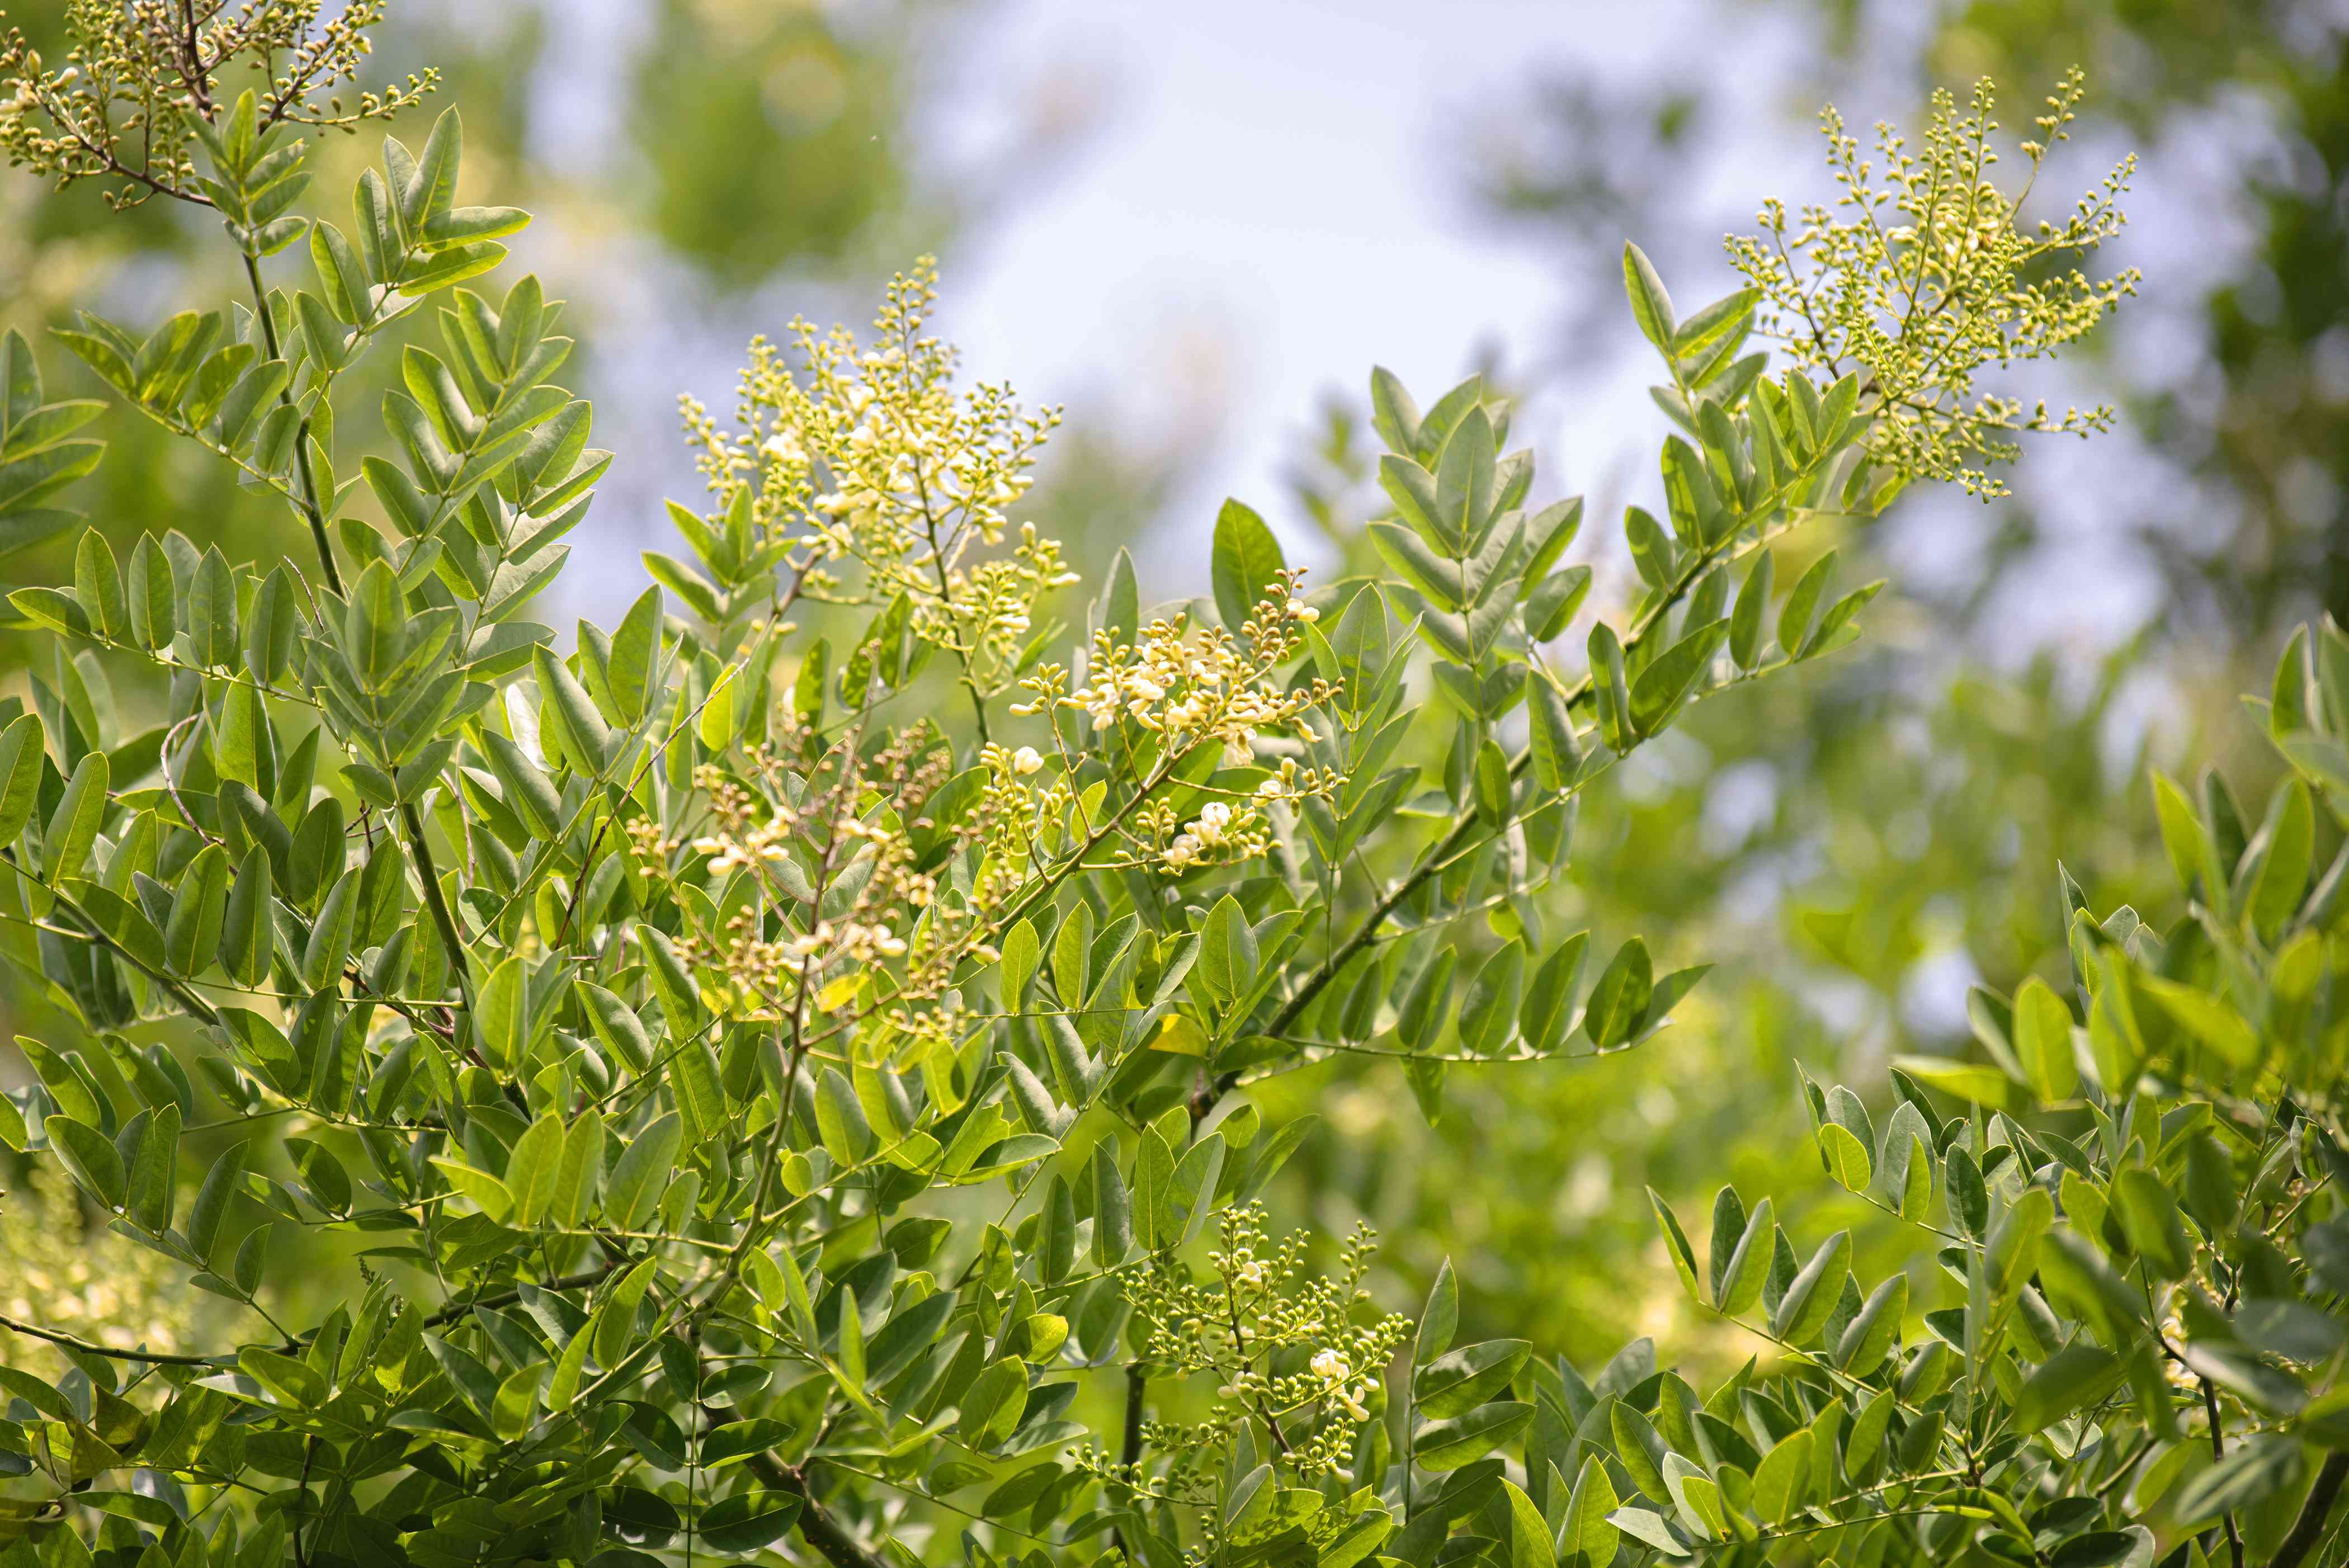 Japanese pagoda tree branches with small oval leaves and tiny yellow flower clusters